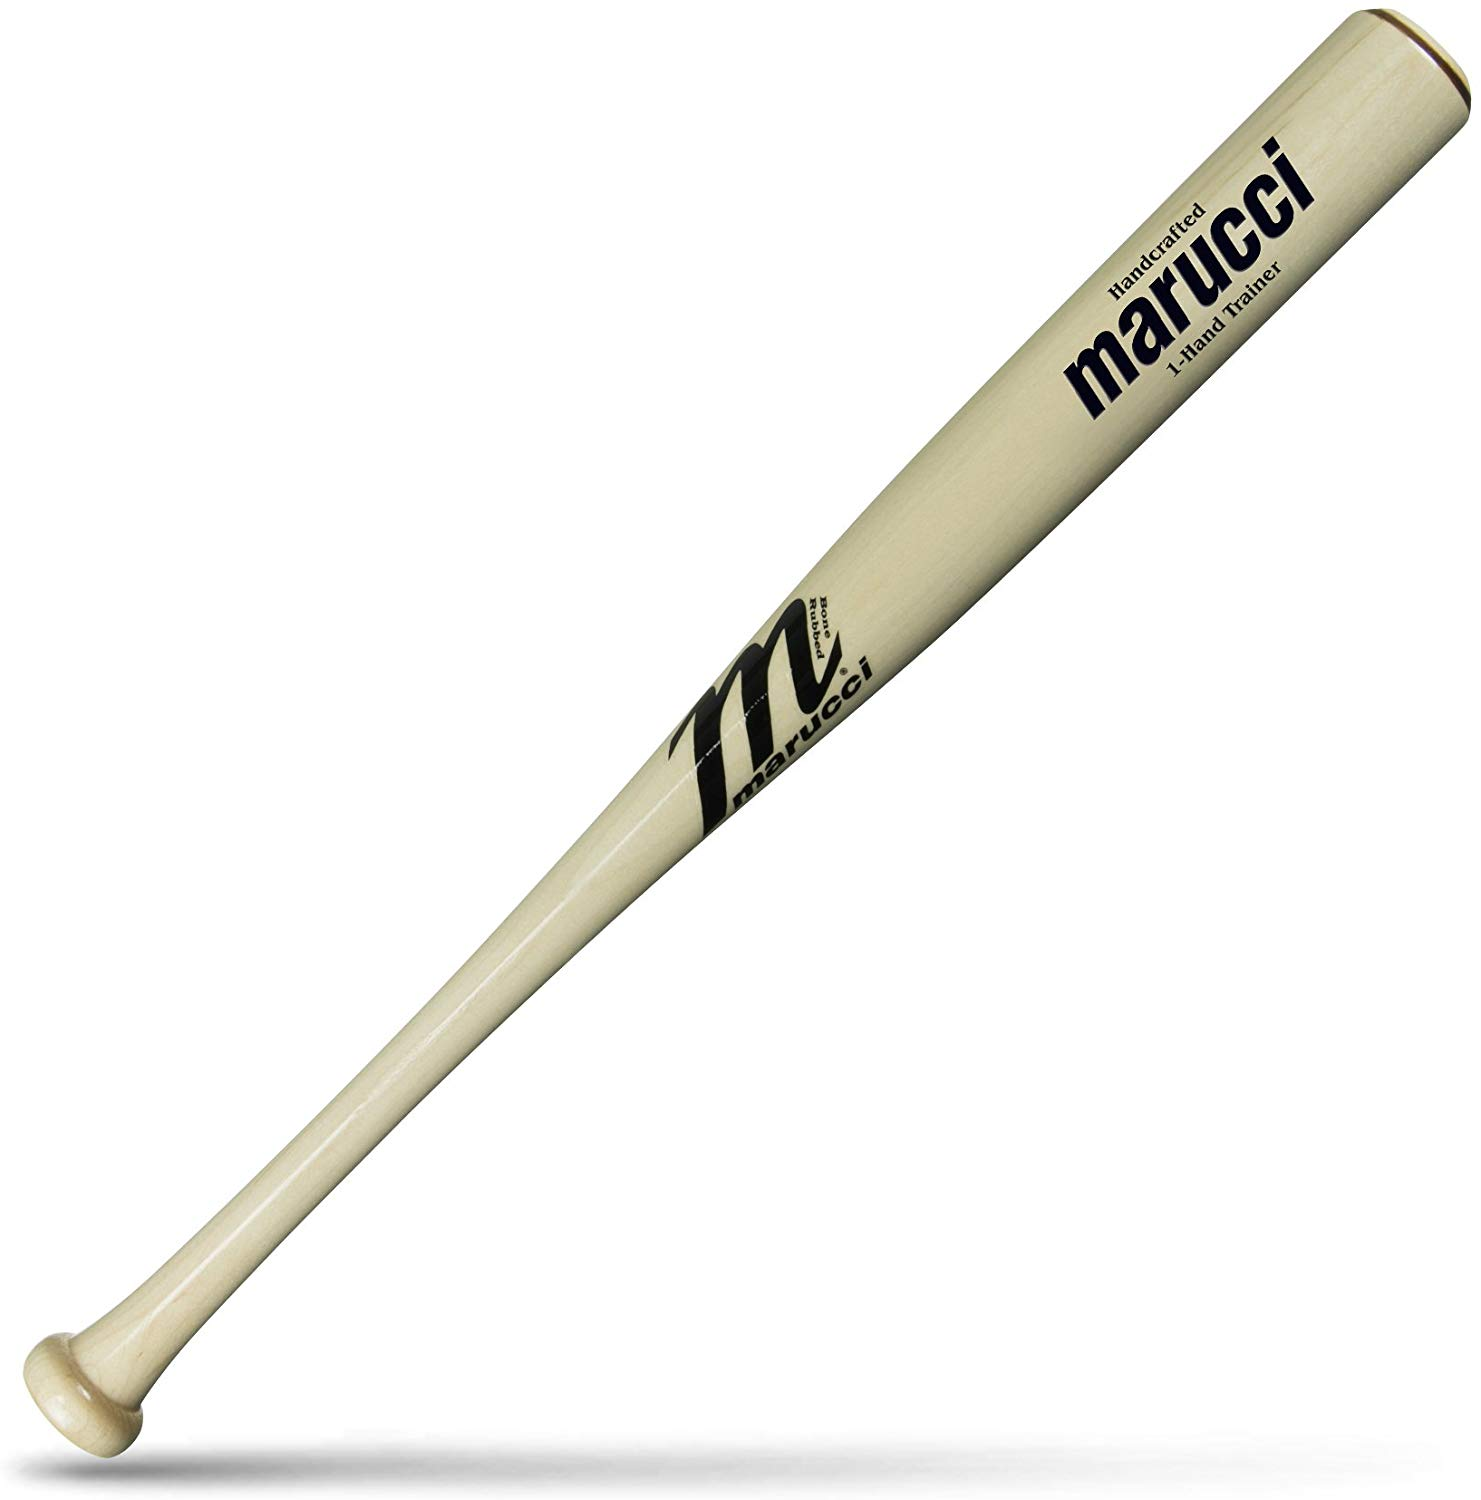 arucci 1-Hand Training BatFeatures: * Handcrafted from top-quality maple * Cut for use in drills to improve top-hand strength and hand-eye coordination * Weight: 15-17 oz. (weight can vary depending on wood density) * Knob: Traditional * Handle: Thick * Barrel: 2 1/4 * Length: 25